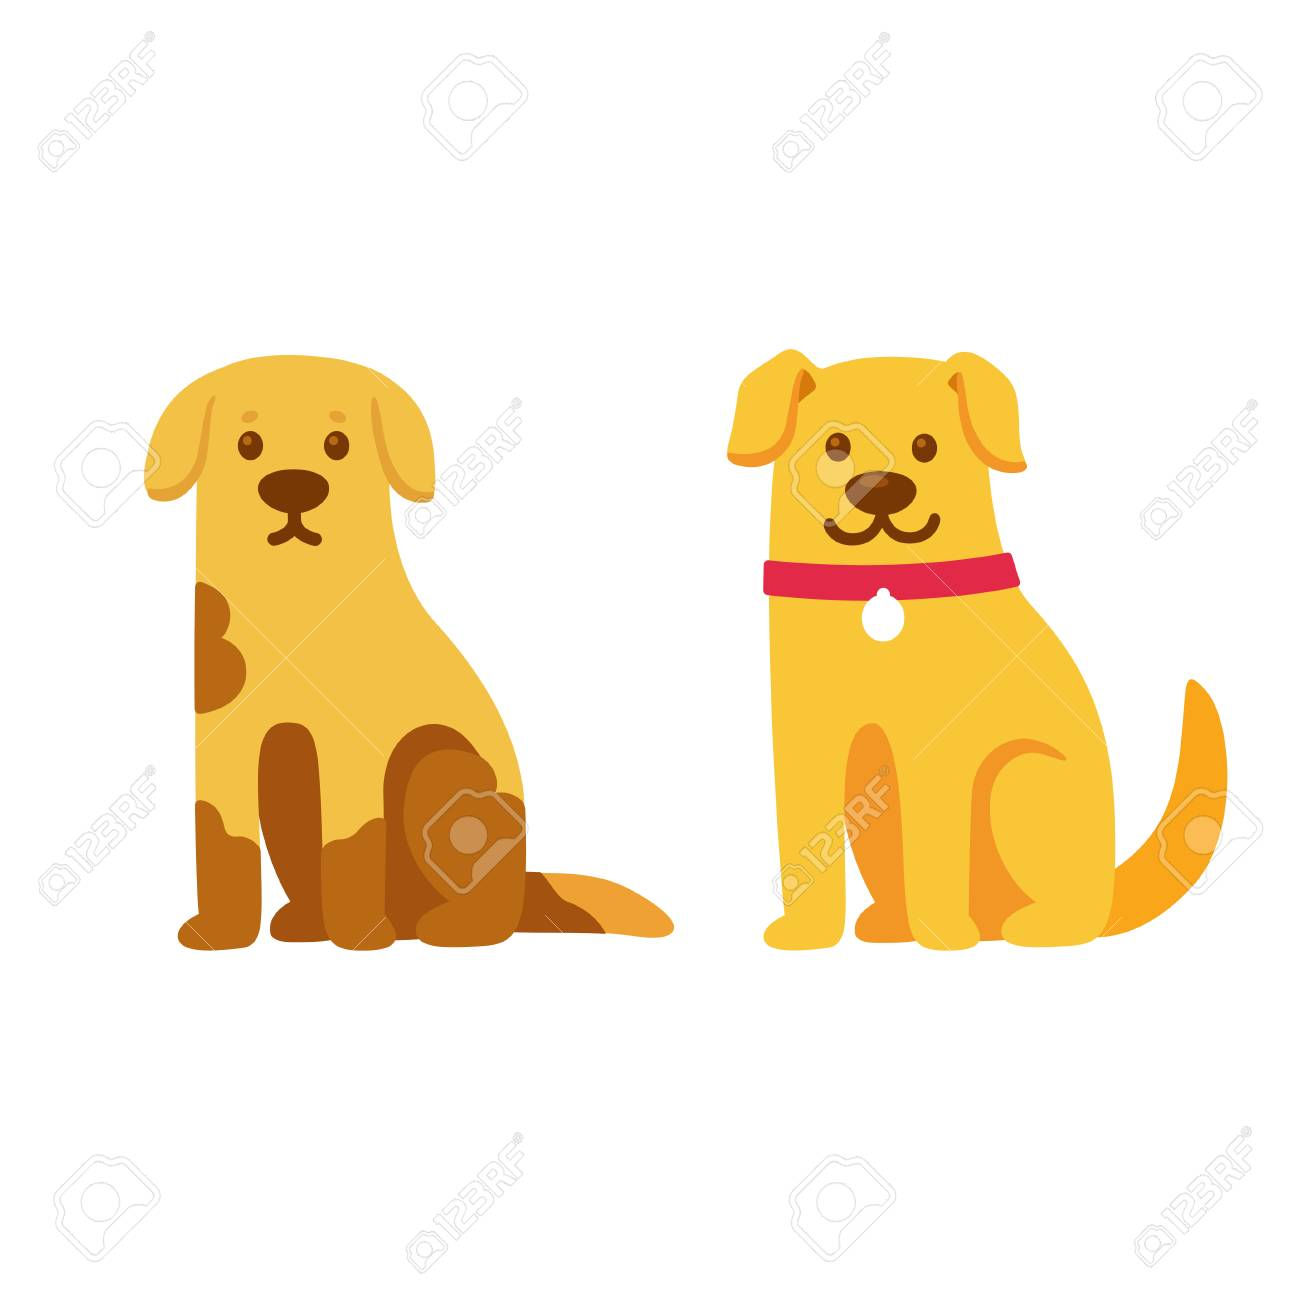 Skinny and dirty stray dog, happy and healthy rescue pet. Before and after adoption, cute cartoon drawing. Adopt a pet concept. Vector illustration. - 90042780